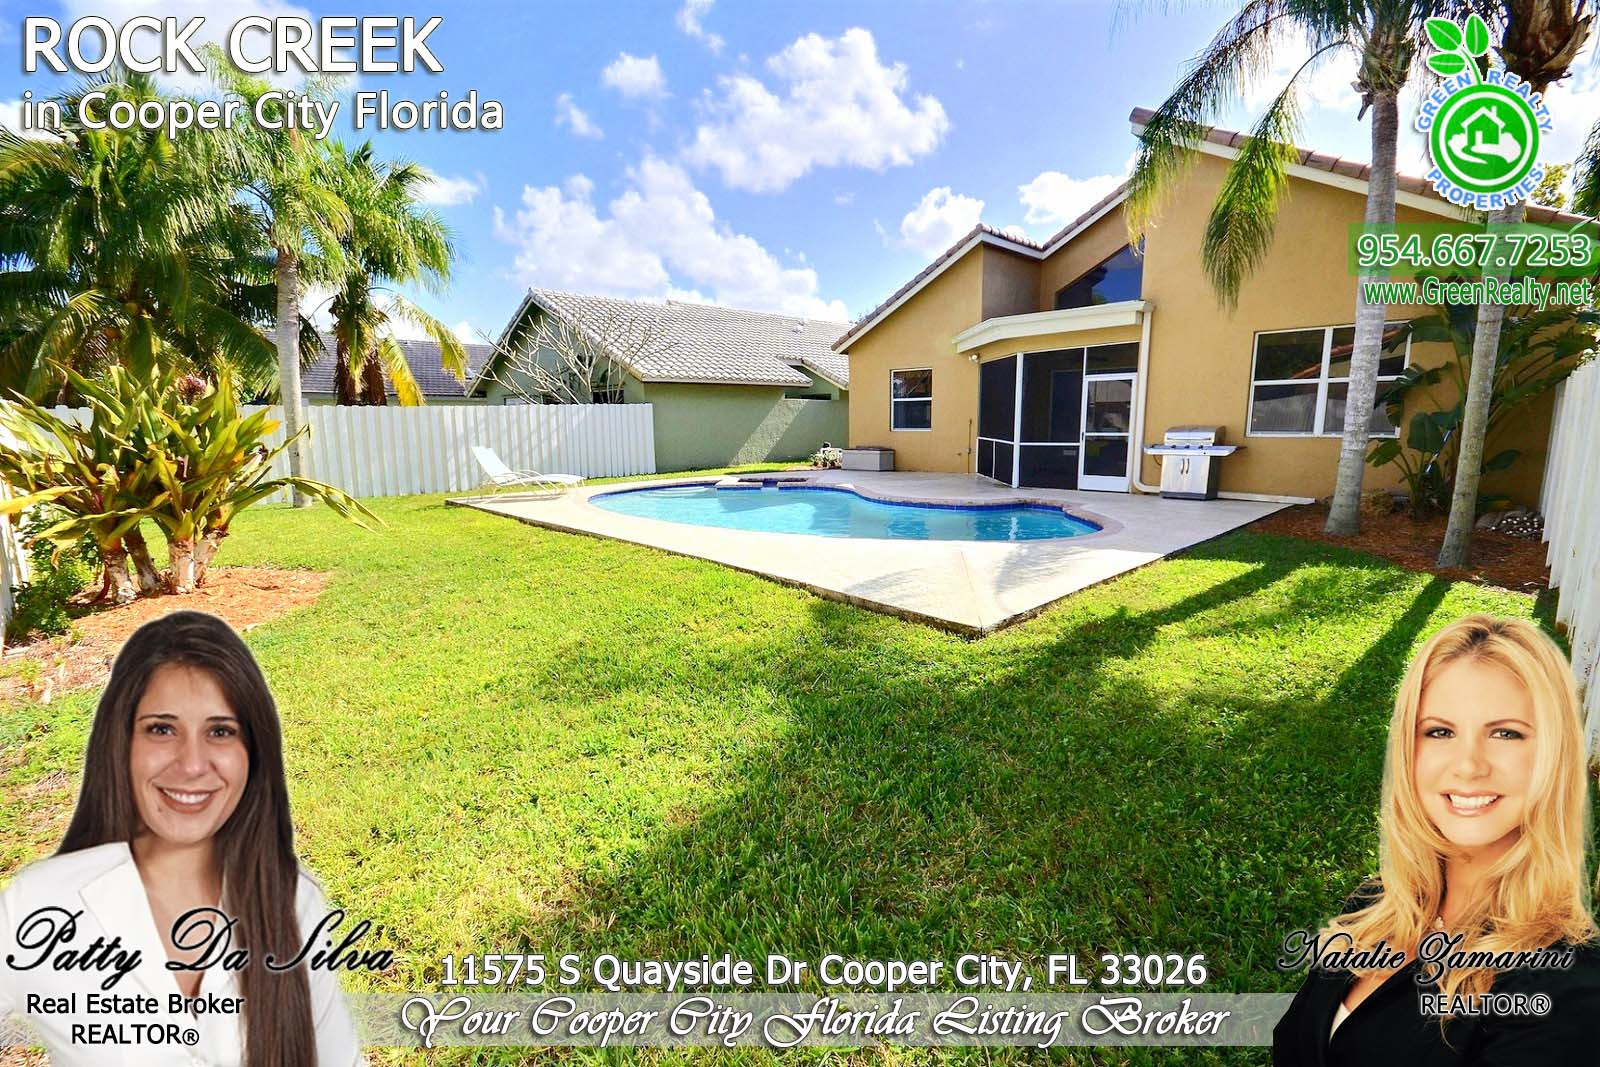 30 Homes For Sale in Quaypoint - Rock Creek Cooper City